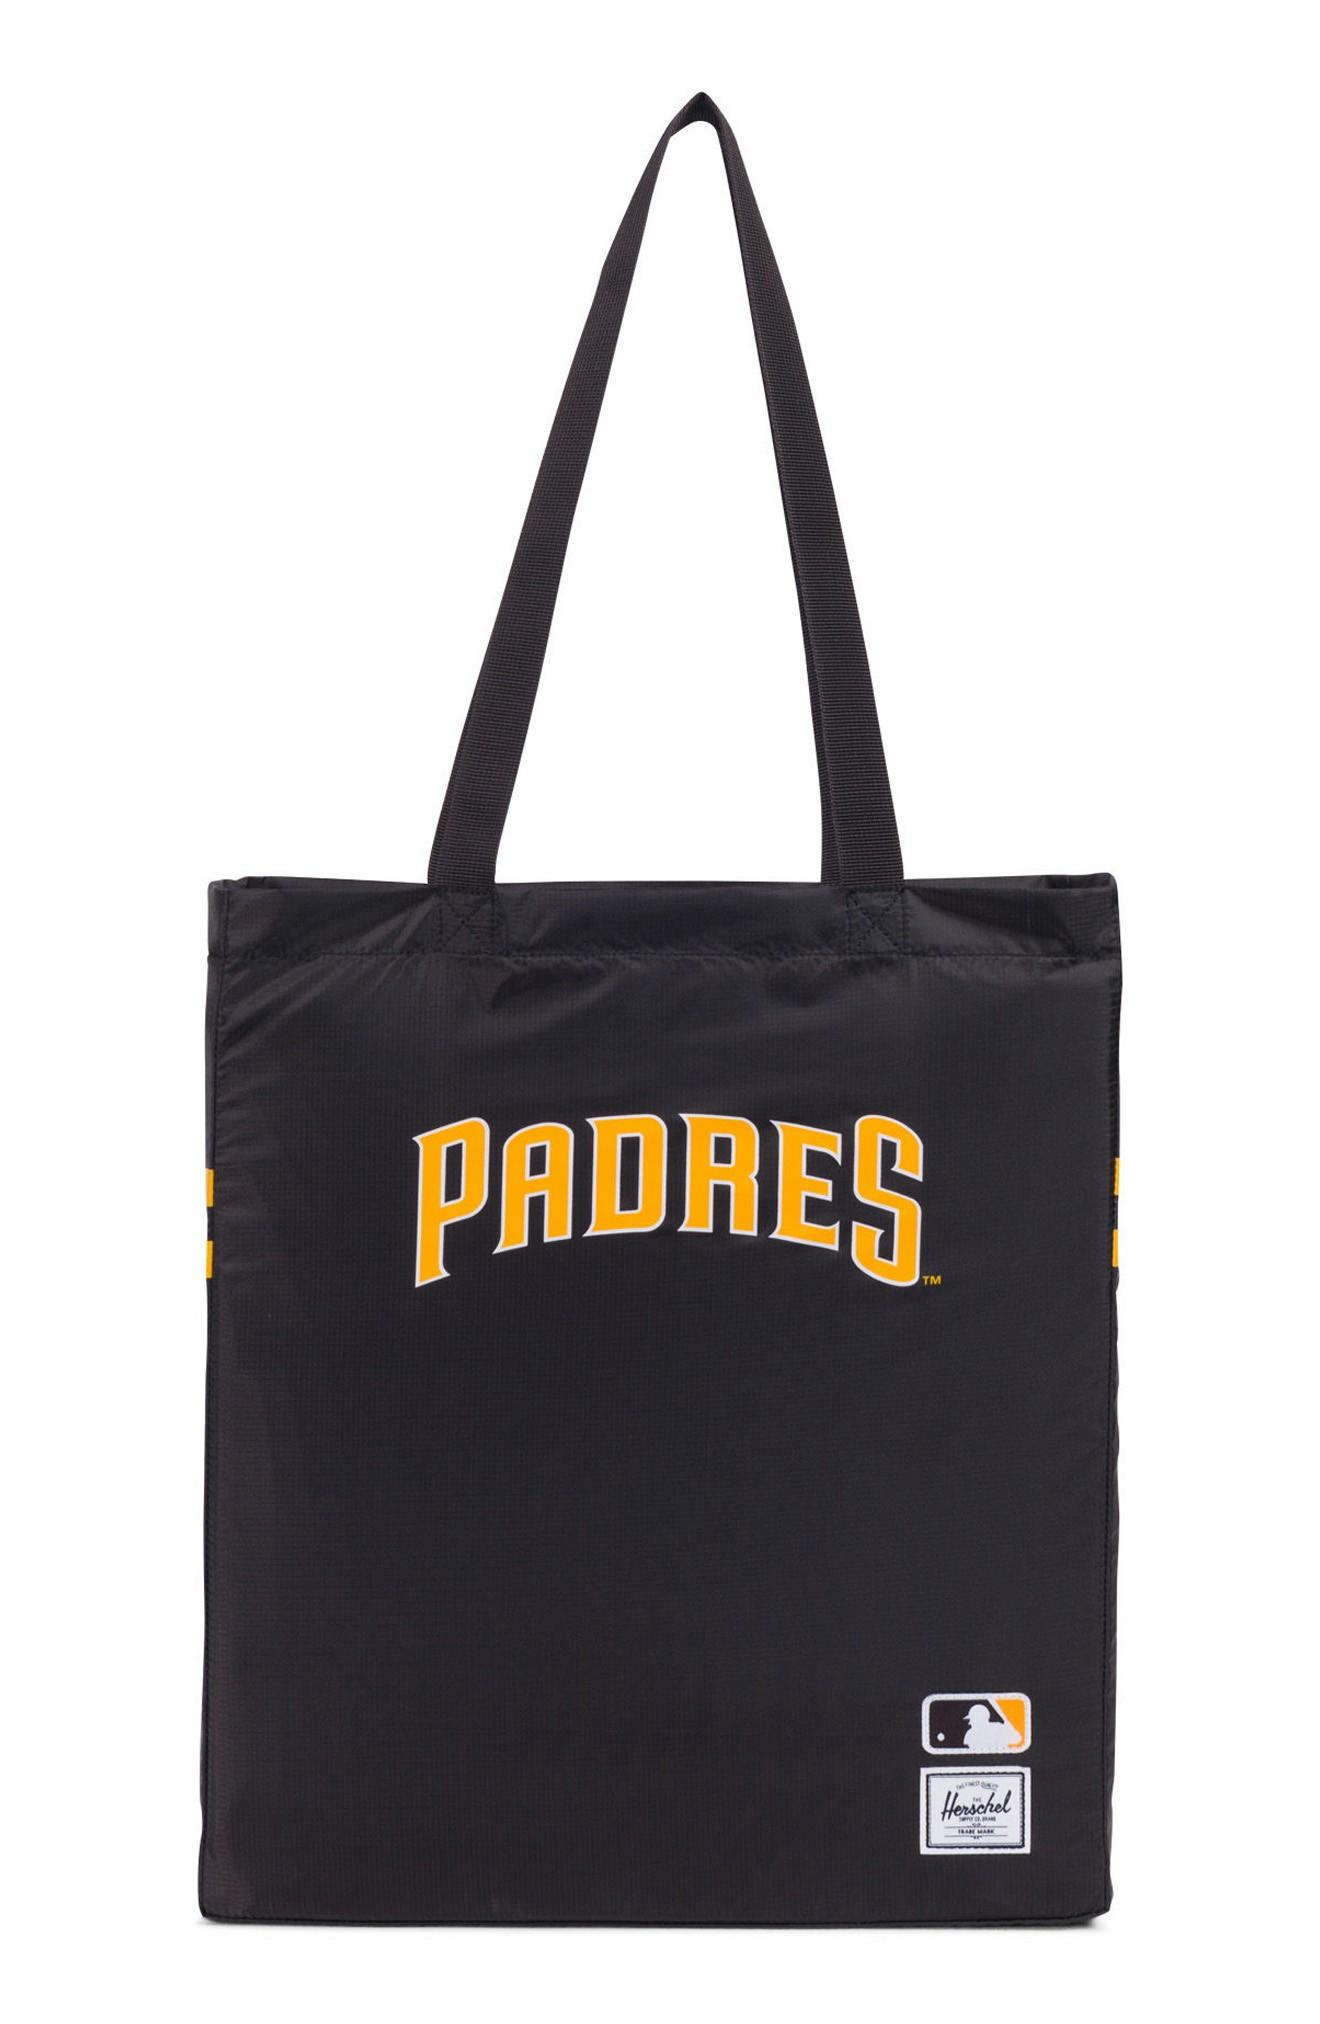 953597b304 Herschel Supply Co. Packable - Mlb National League Tote Bag - Brown ...